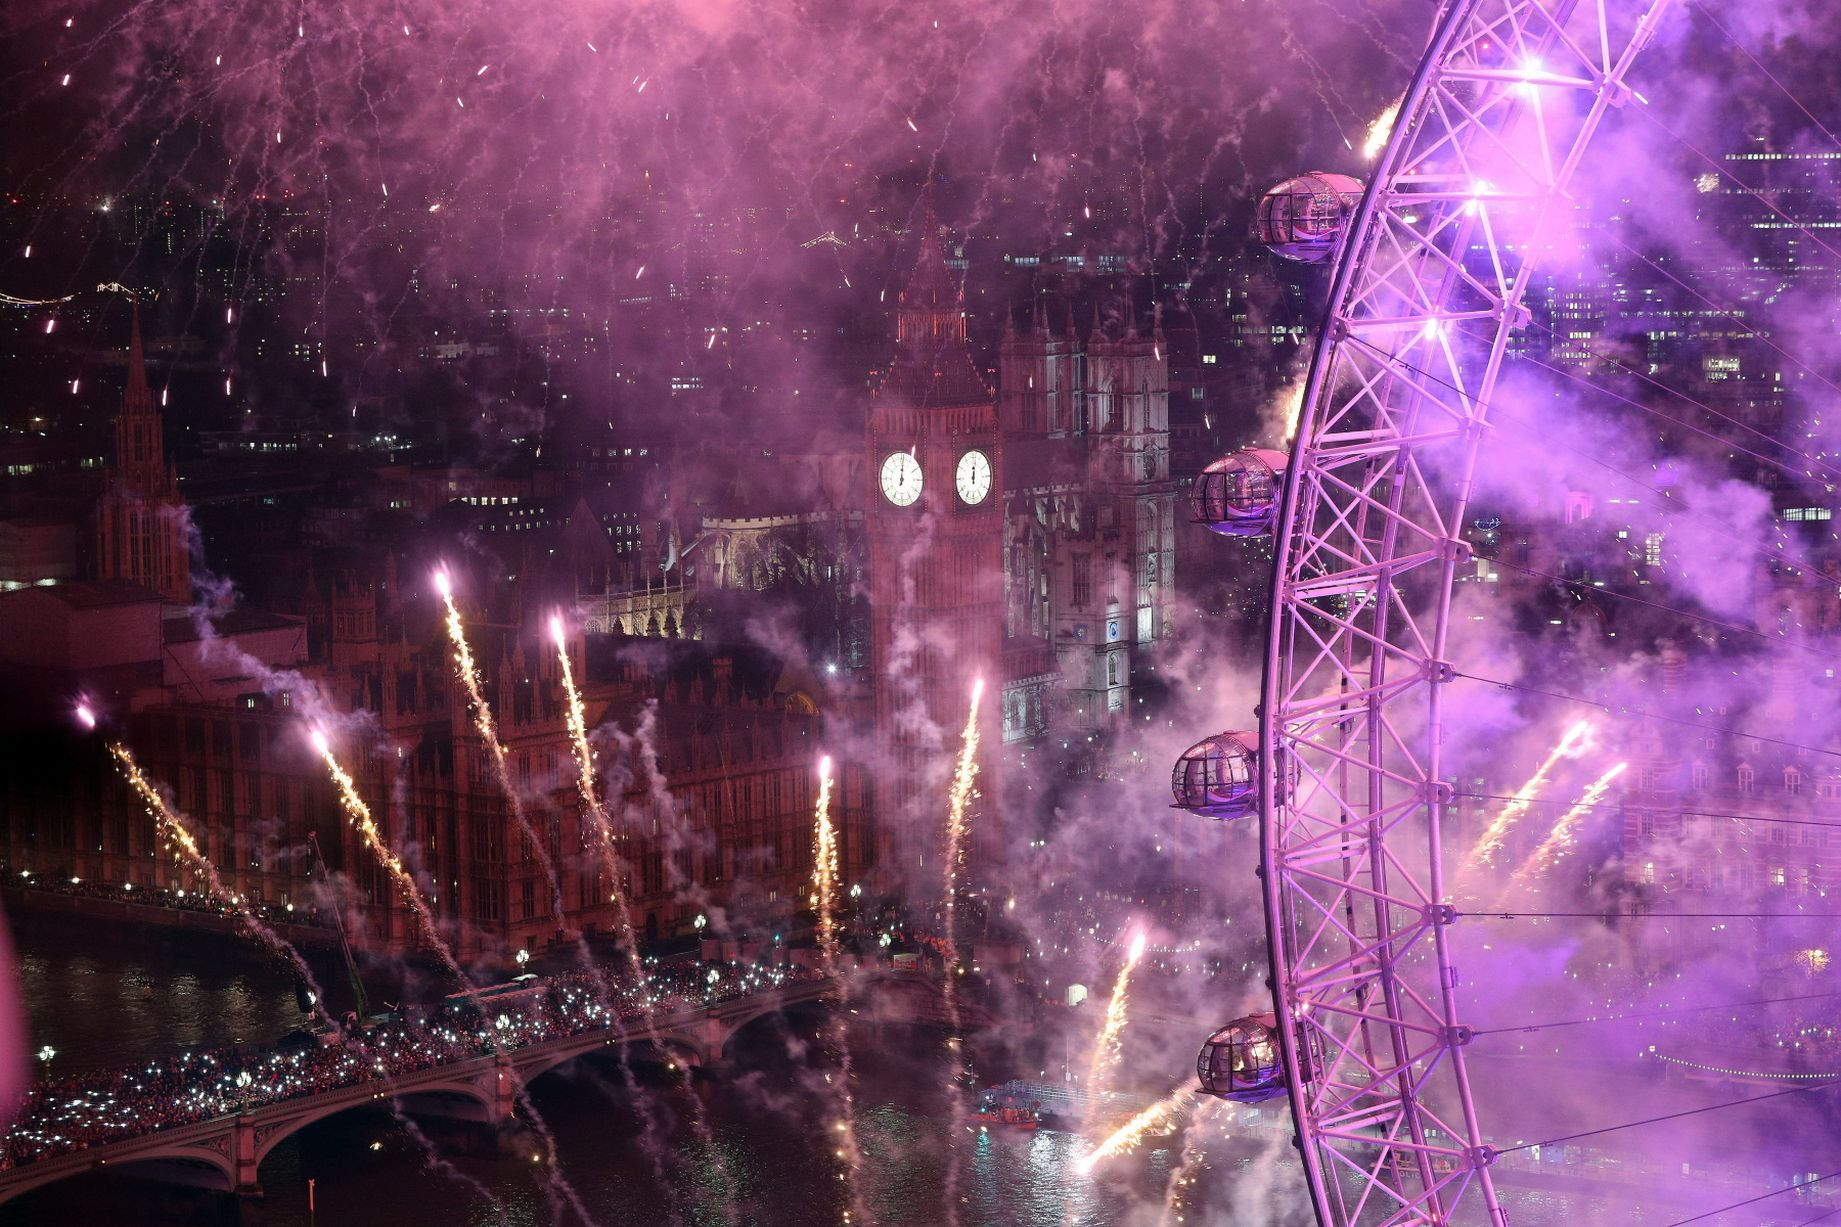 New Years Eve Celebrations 2016 London fireworks